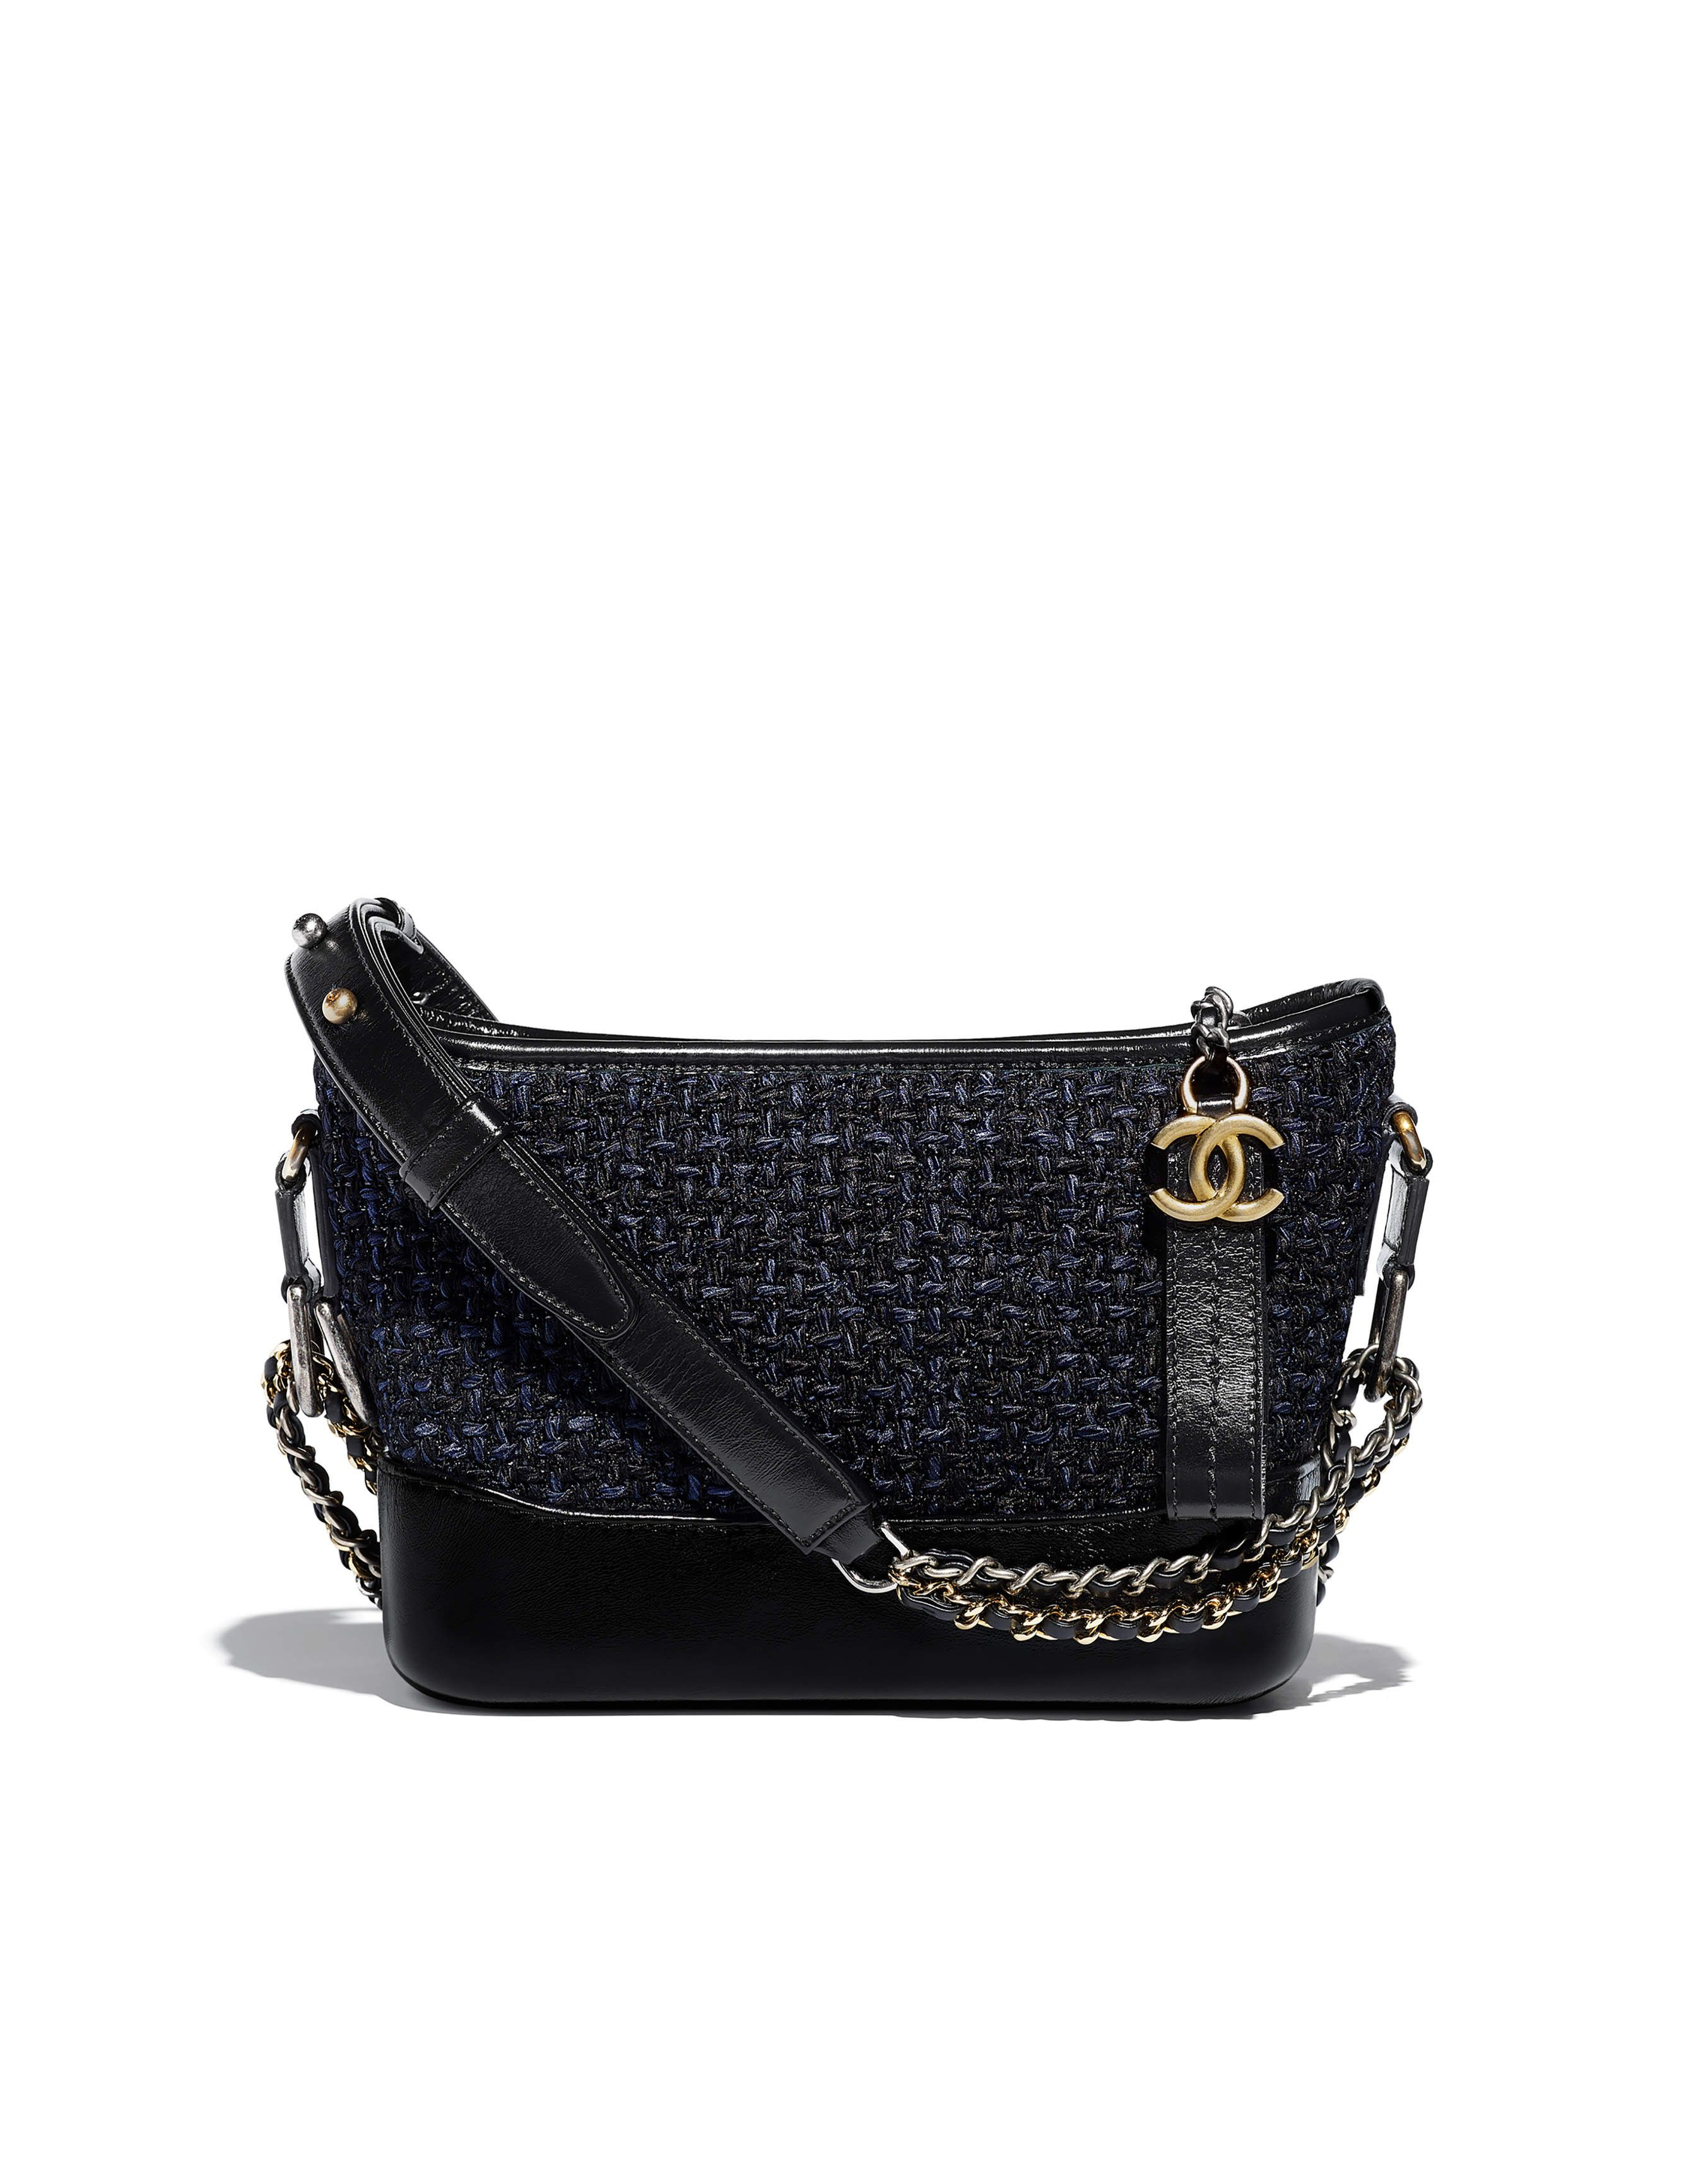 9523452cd192 The latest Handbags collections on the CHANEL official website ...